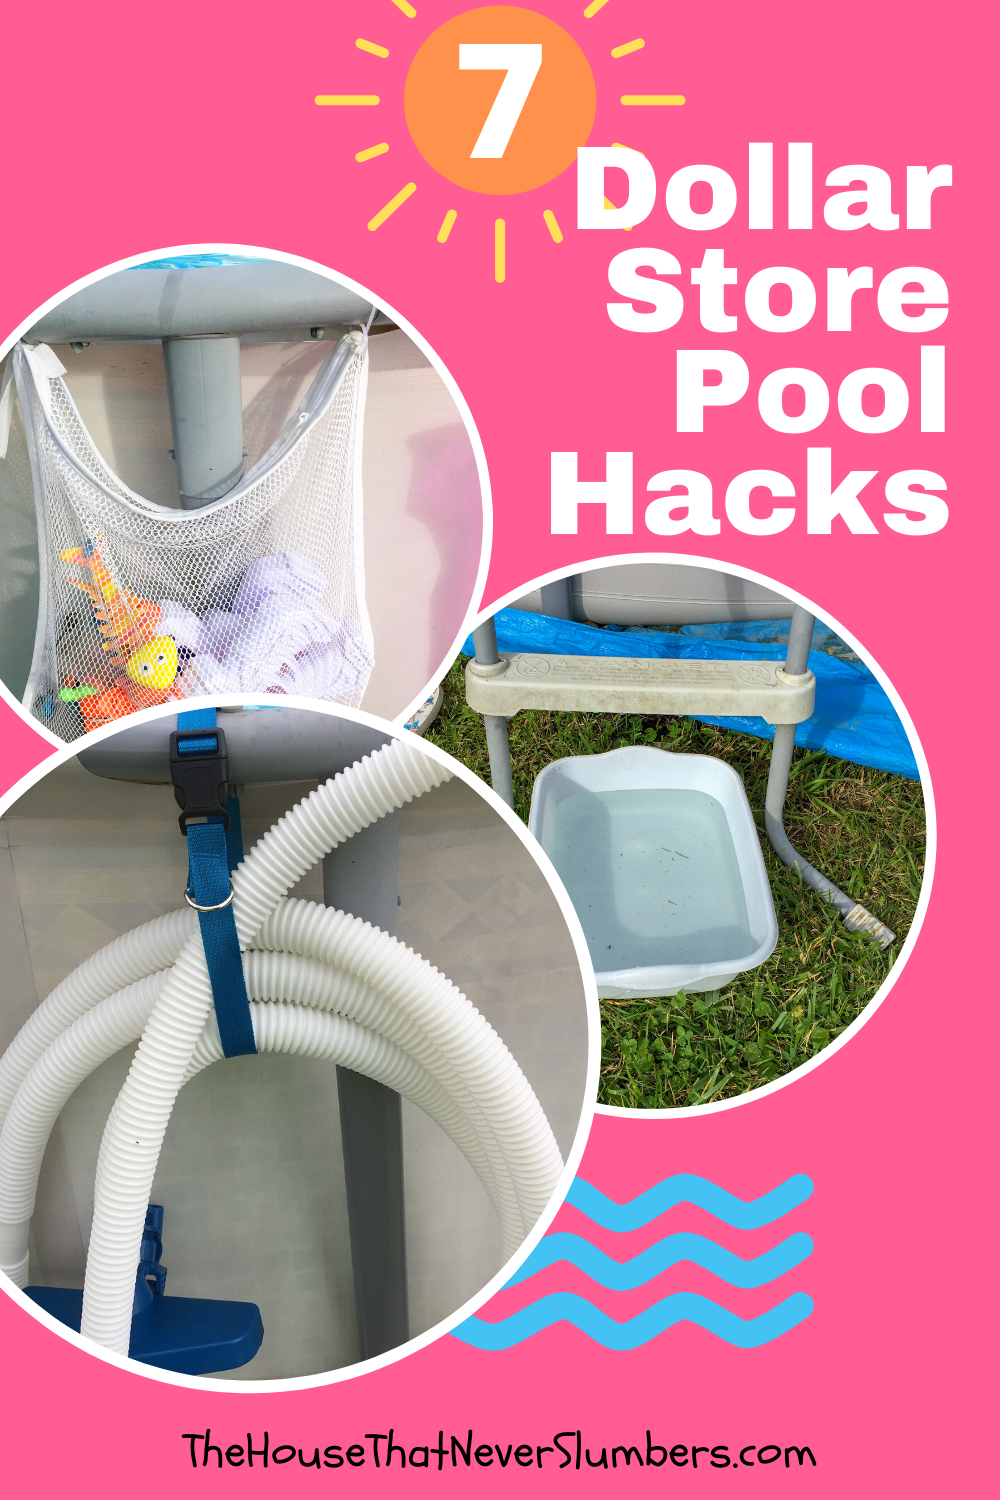 Dollar Store Pools : dollar, store, pools, Cheap, Dollar, Store, Hacks, House, Never, Slumbers, Hacks,, Pool,, Cleaning